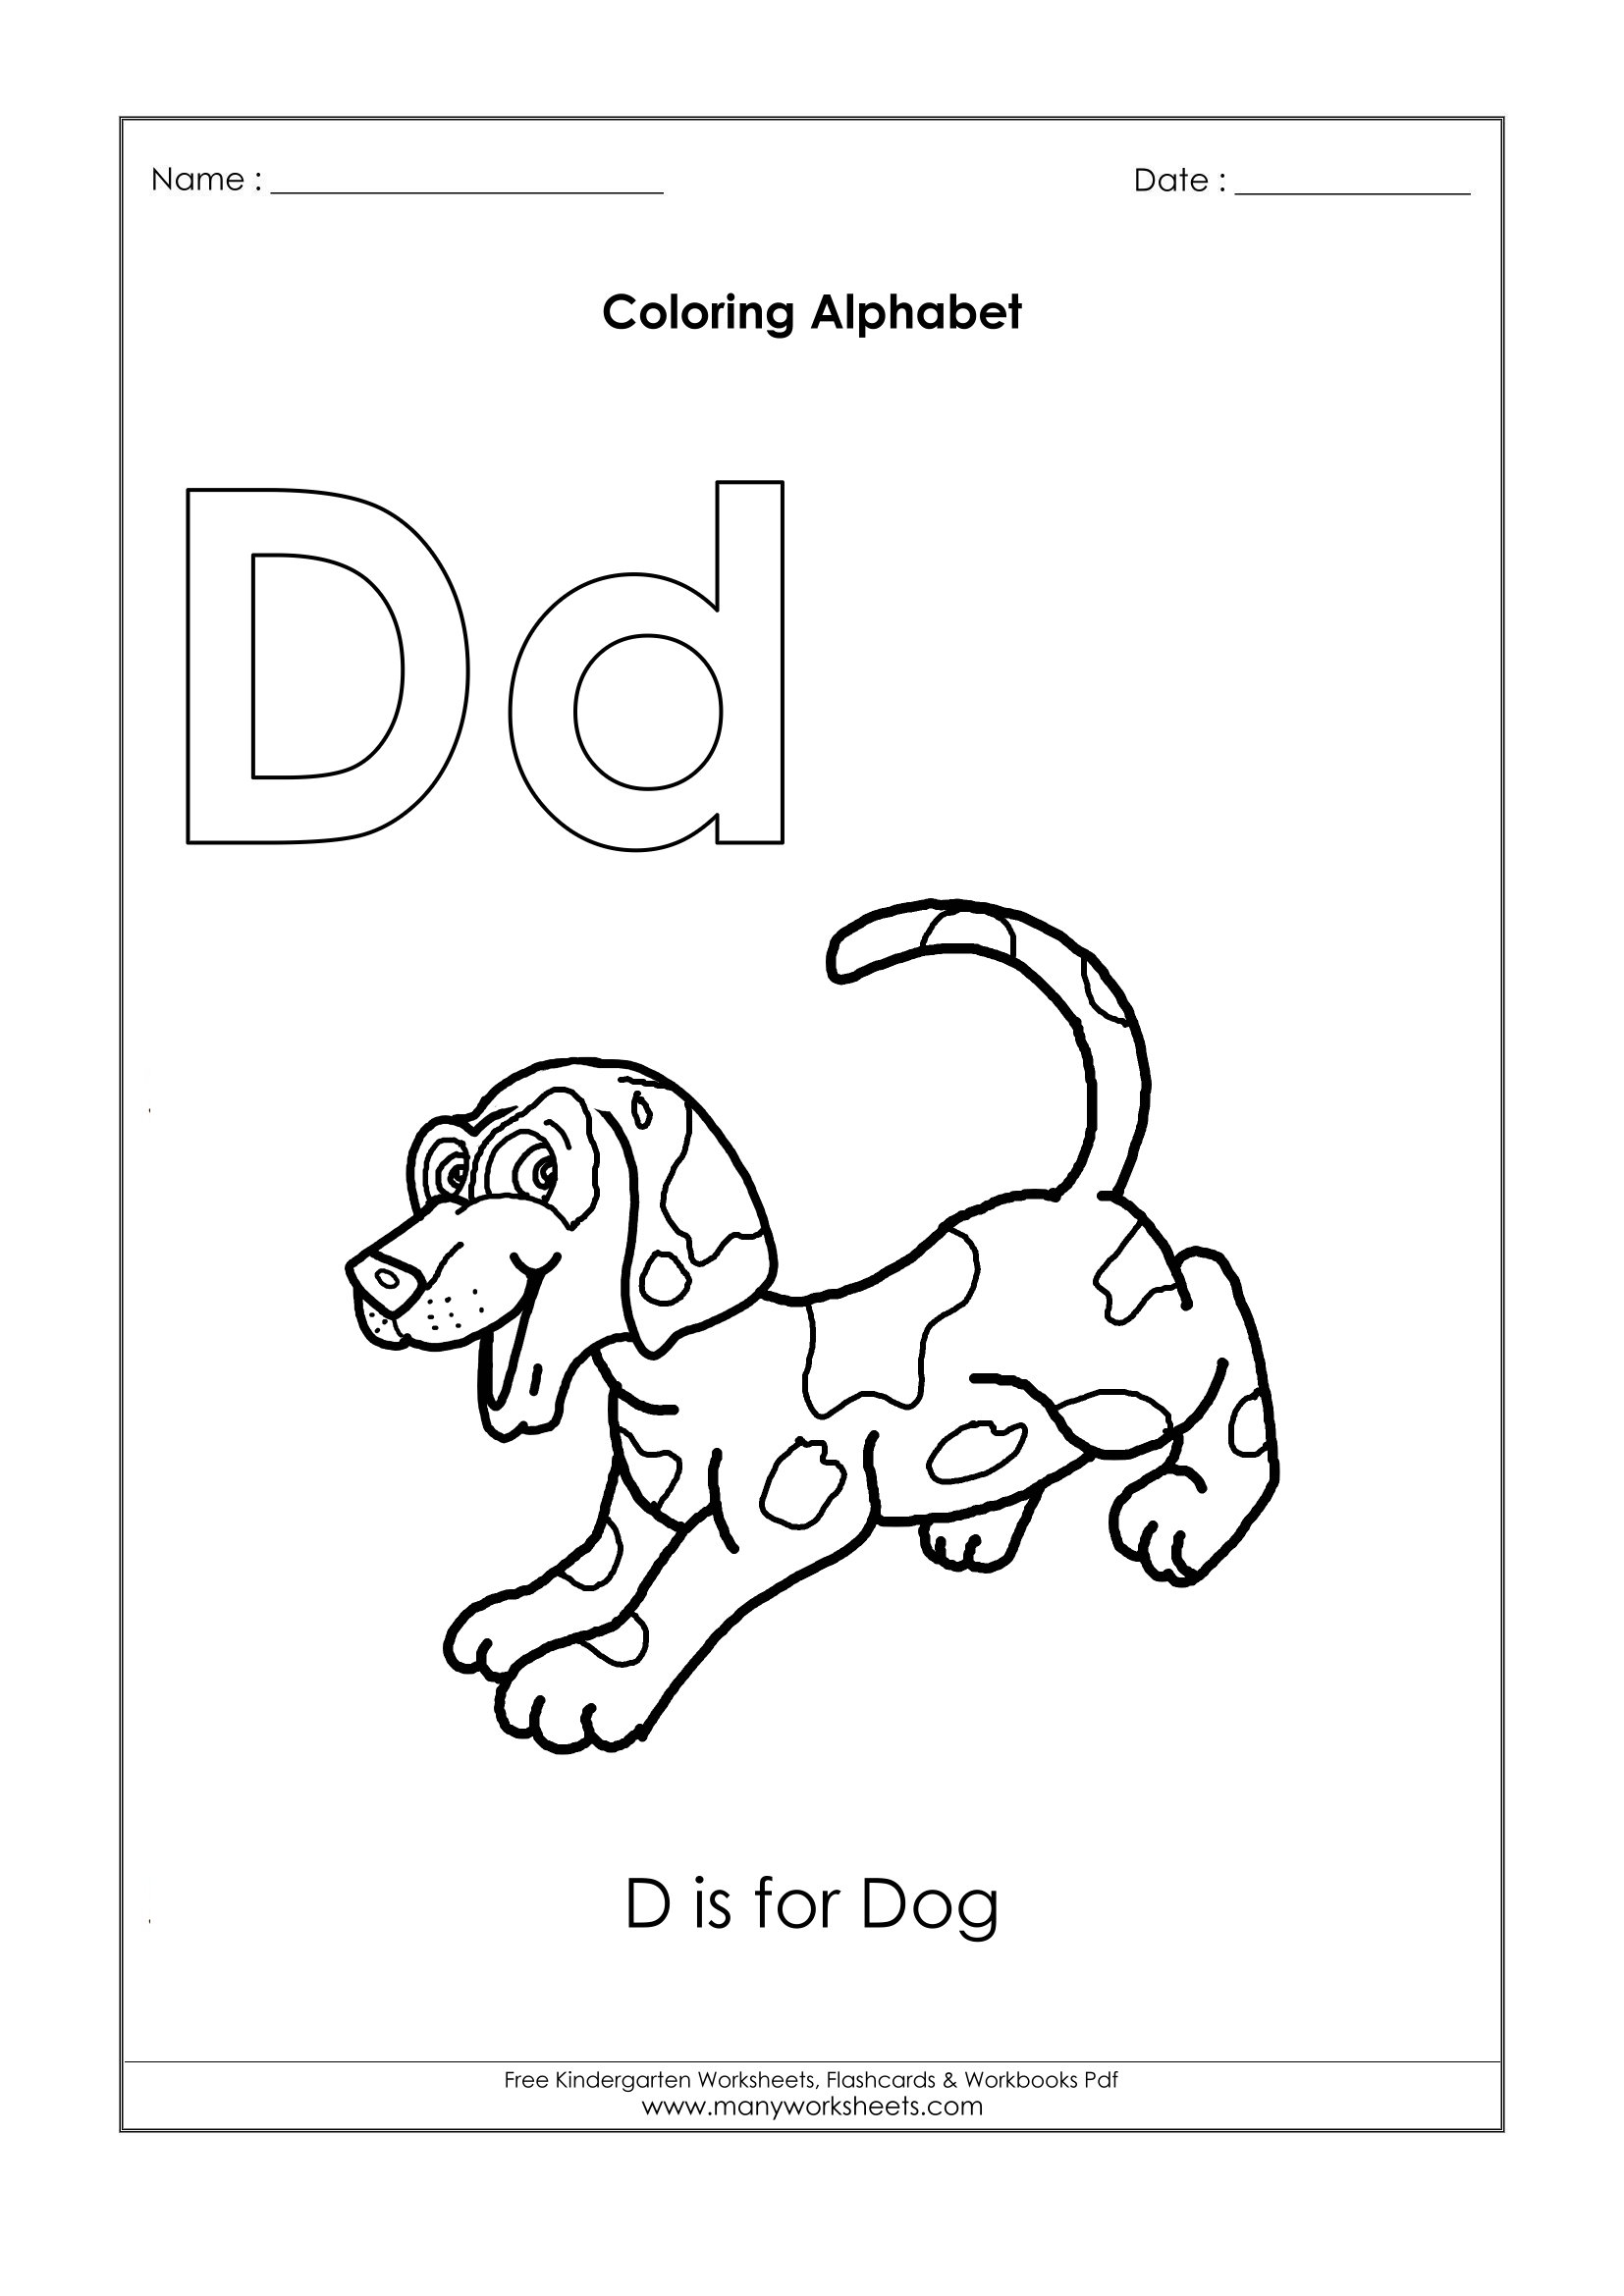 Letter D Coloring Pages – D for Dog